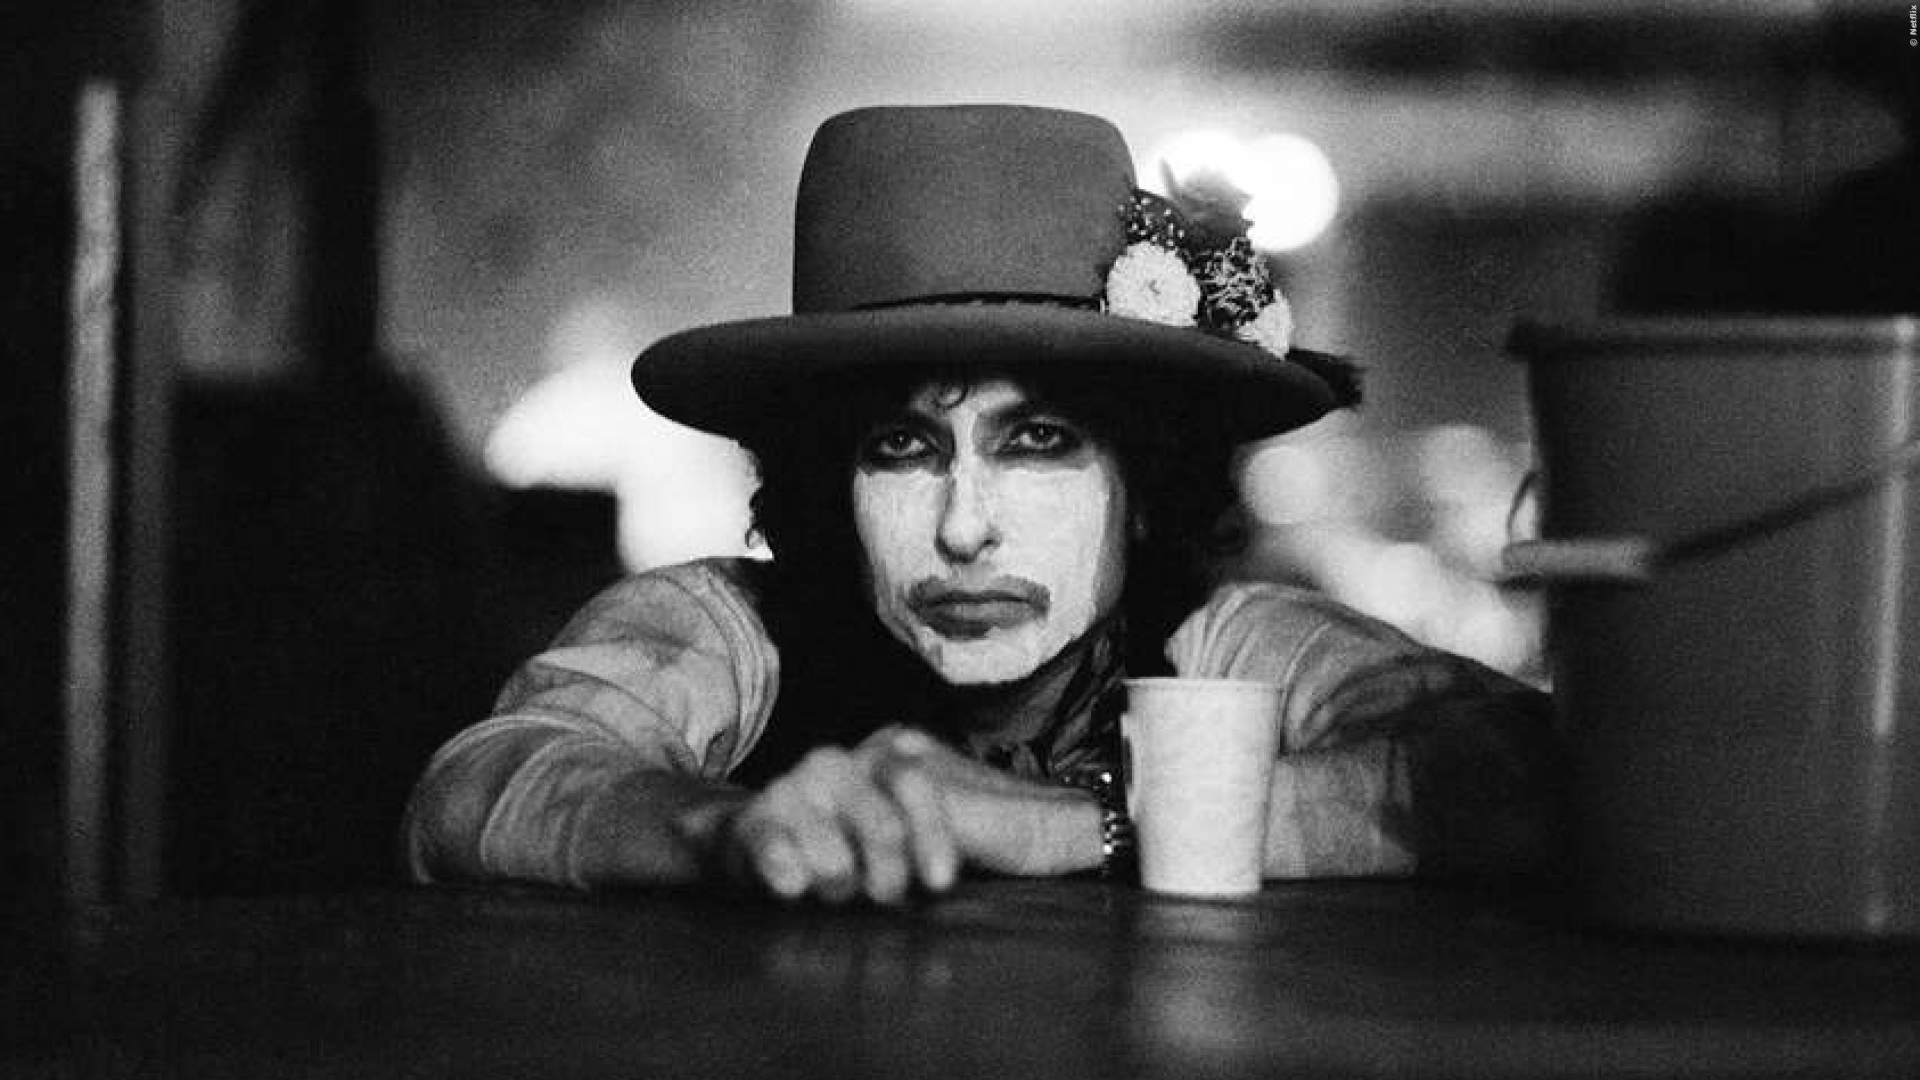 TRAILER - Rolling Thunder Revue: A Bob Dylan Story By Martin Scorsese